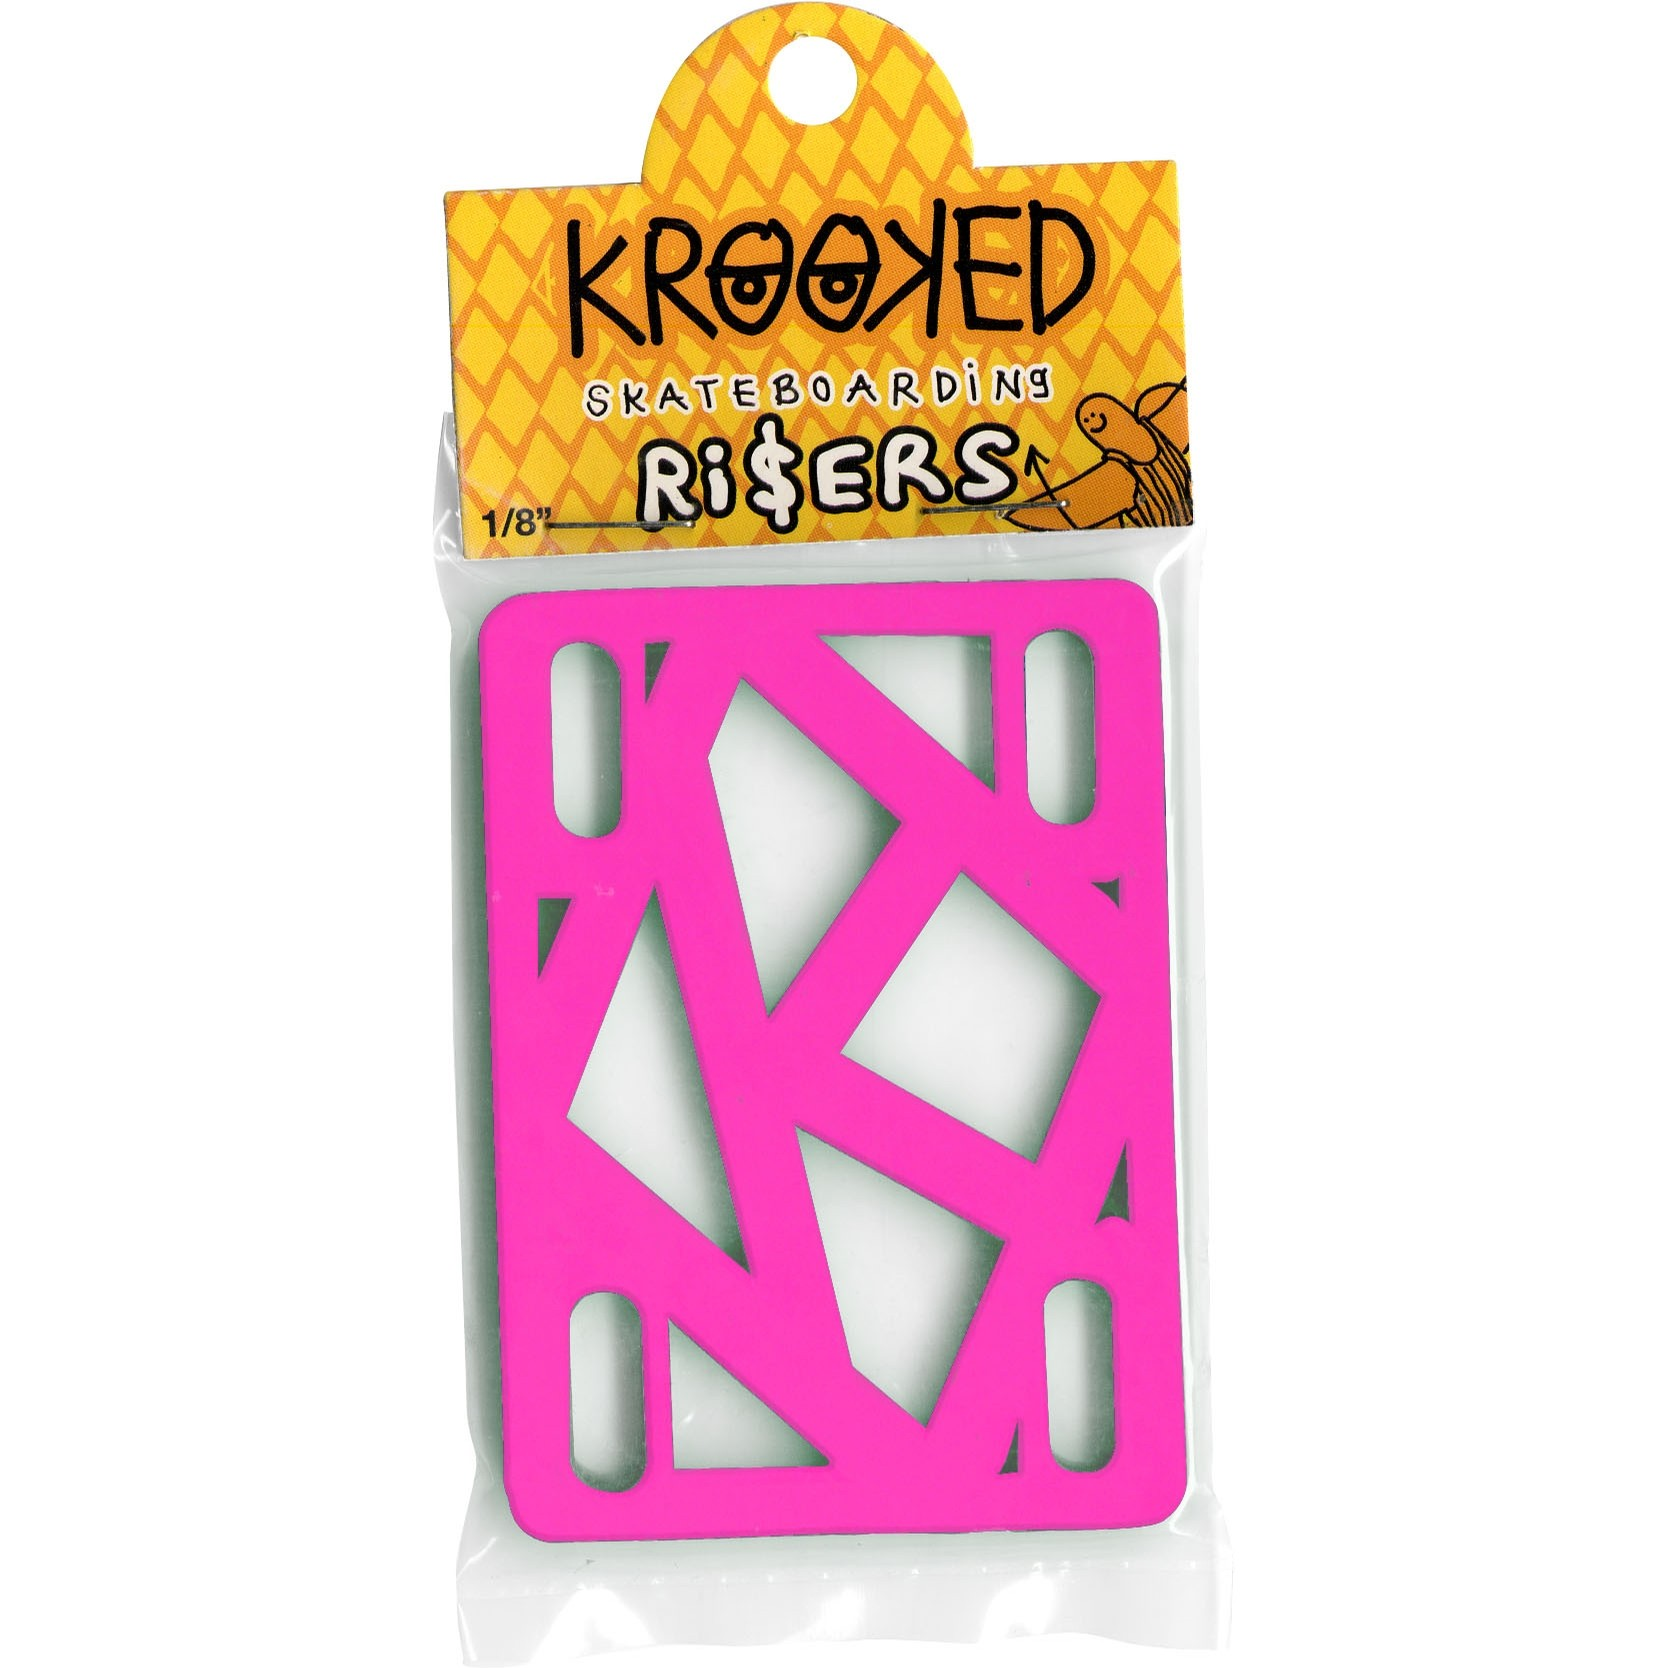 Krooked 1/8 inch riser pads